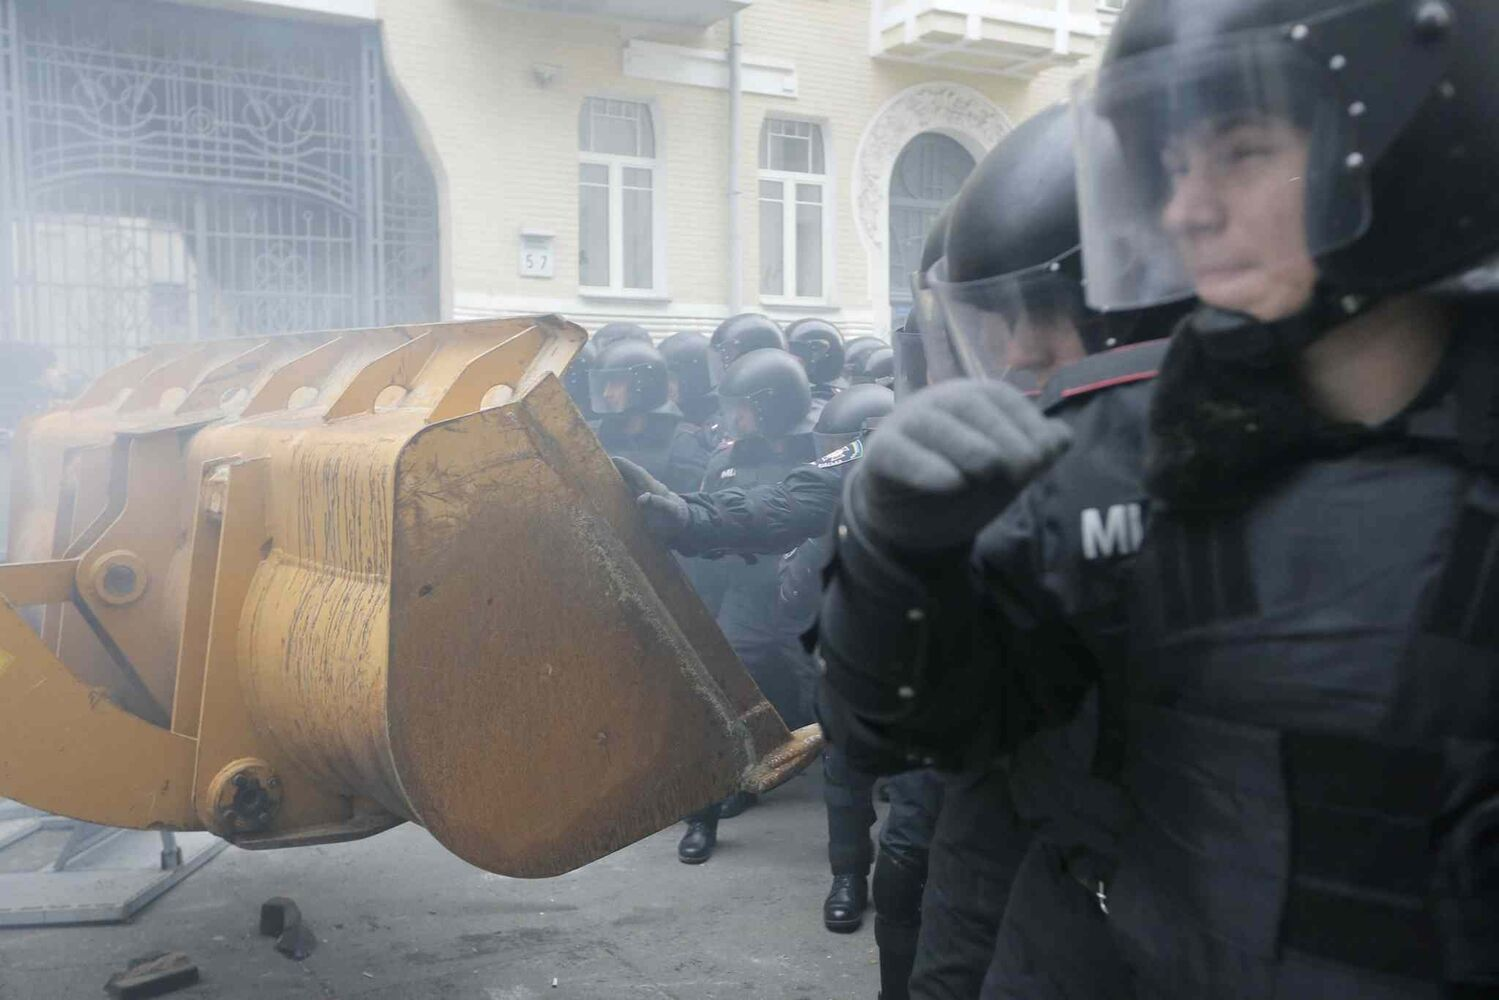 Protesters use an excavator during clashes with police at the Presidential office in Kiev, Ukraine, on Sunday. As many as 100,000 demonstrators chased away police to rally in the center of Ukraine's capital on Sunday, defying a government ban on protests on Independence Square, in the biggest show of anger over the president's refusal to sign an agreement with the European Union.